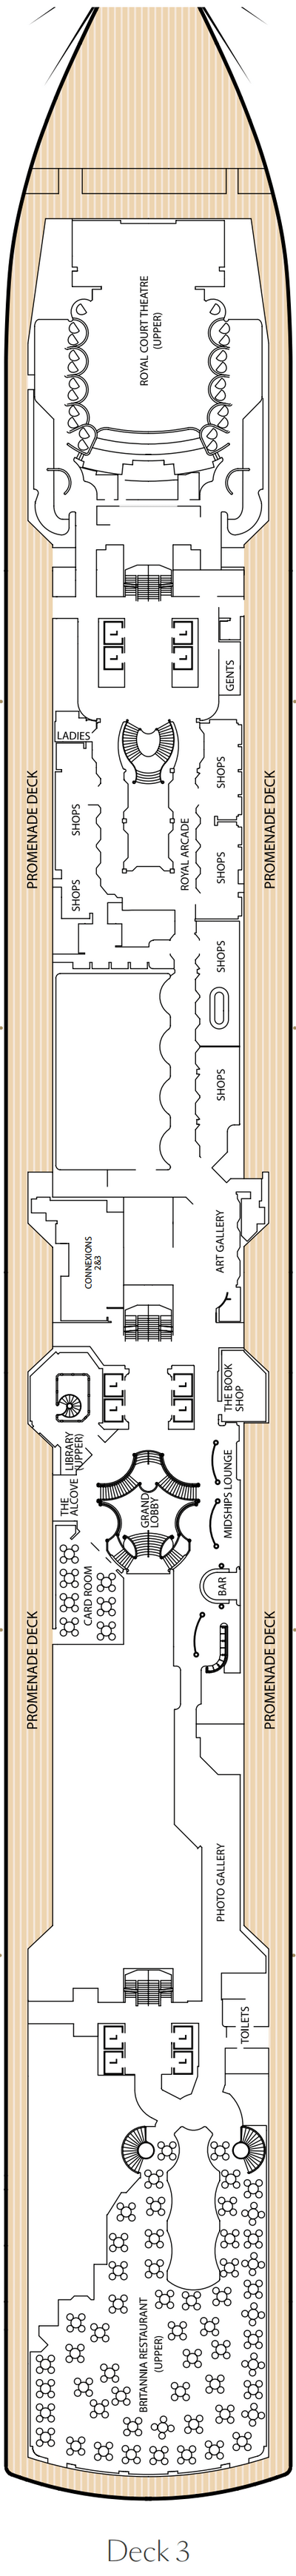 Queen Victoria Deck 3 layout